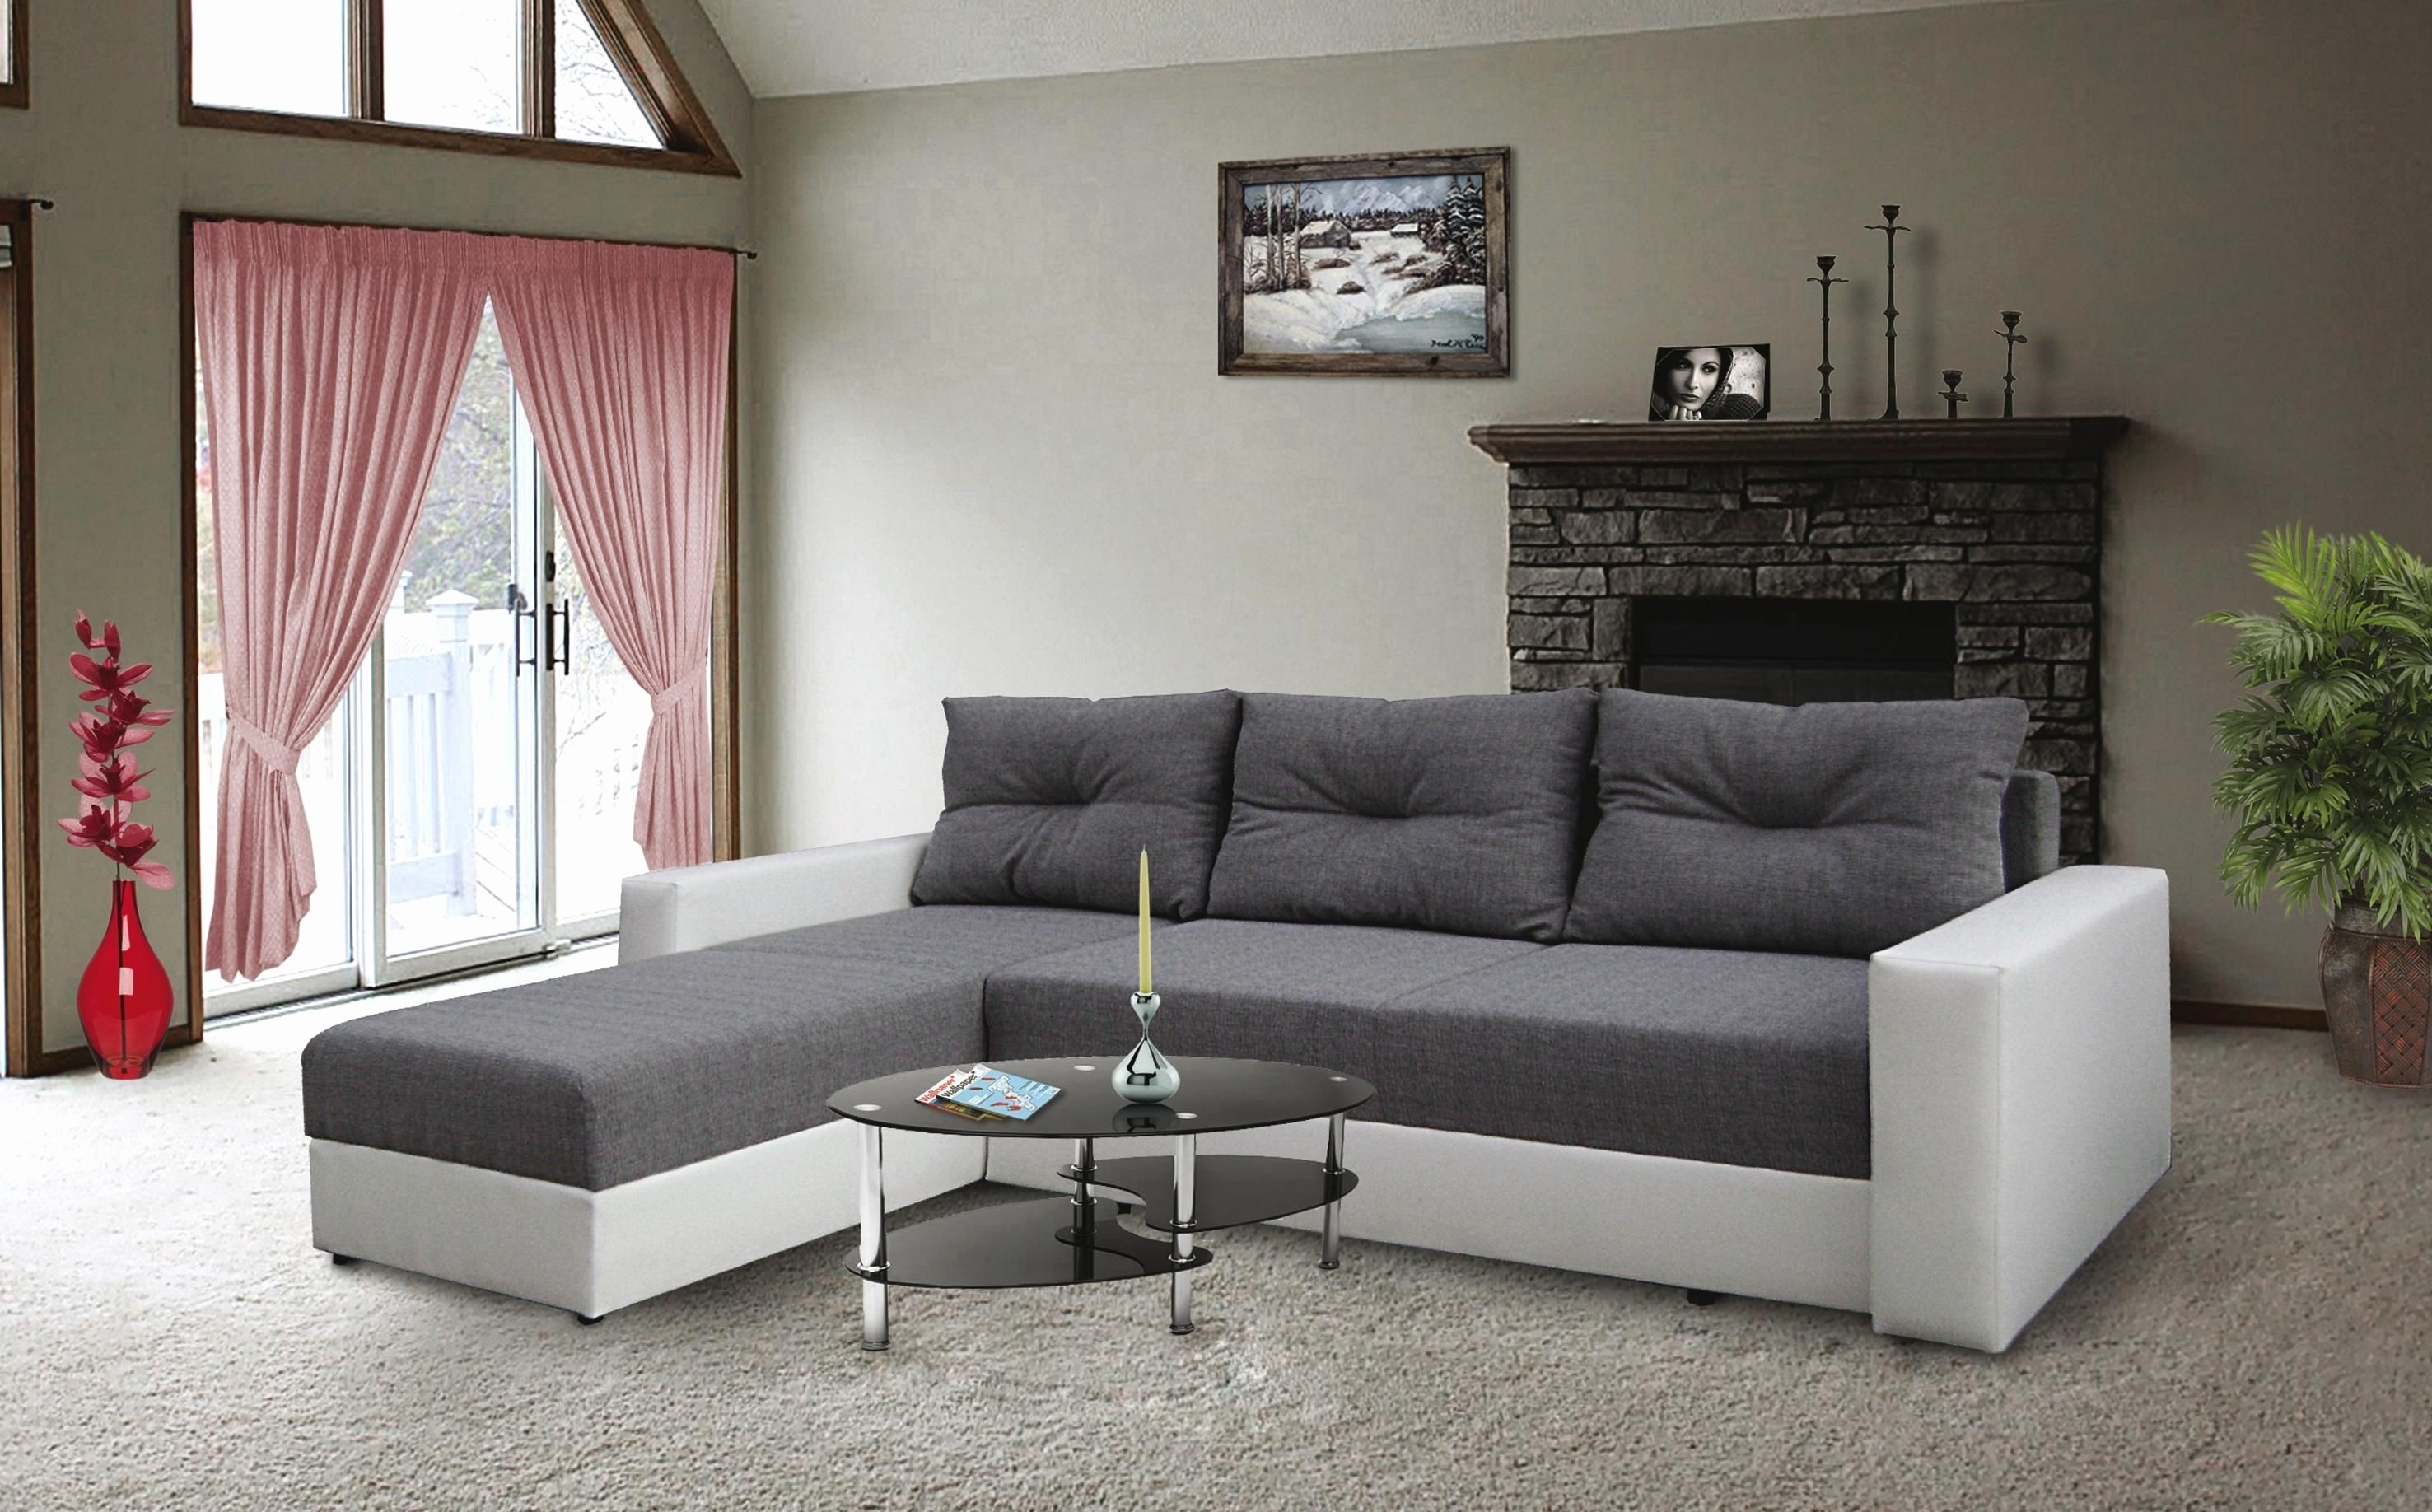 39 Collection Sectional Living Room Ideas Graphics | Living Room within Aquarius Light Grey 2 Piece Sectionals With Raf Chaise (Image 4 of 30)